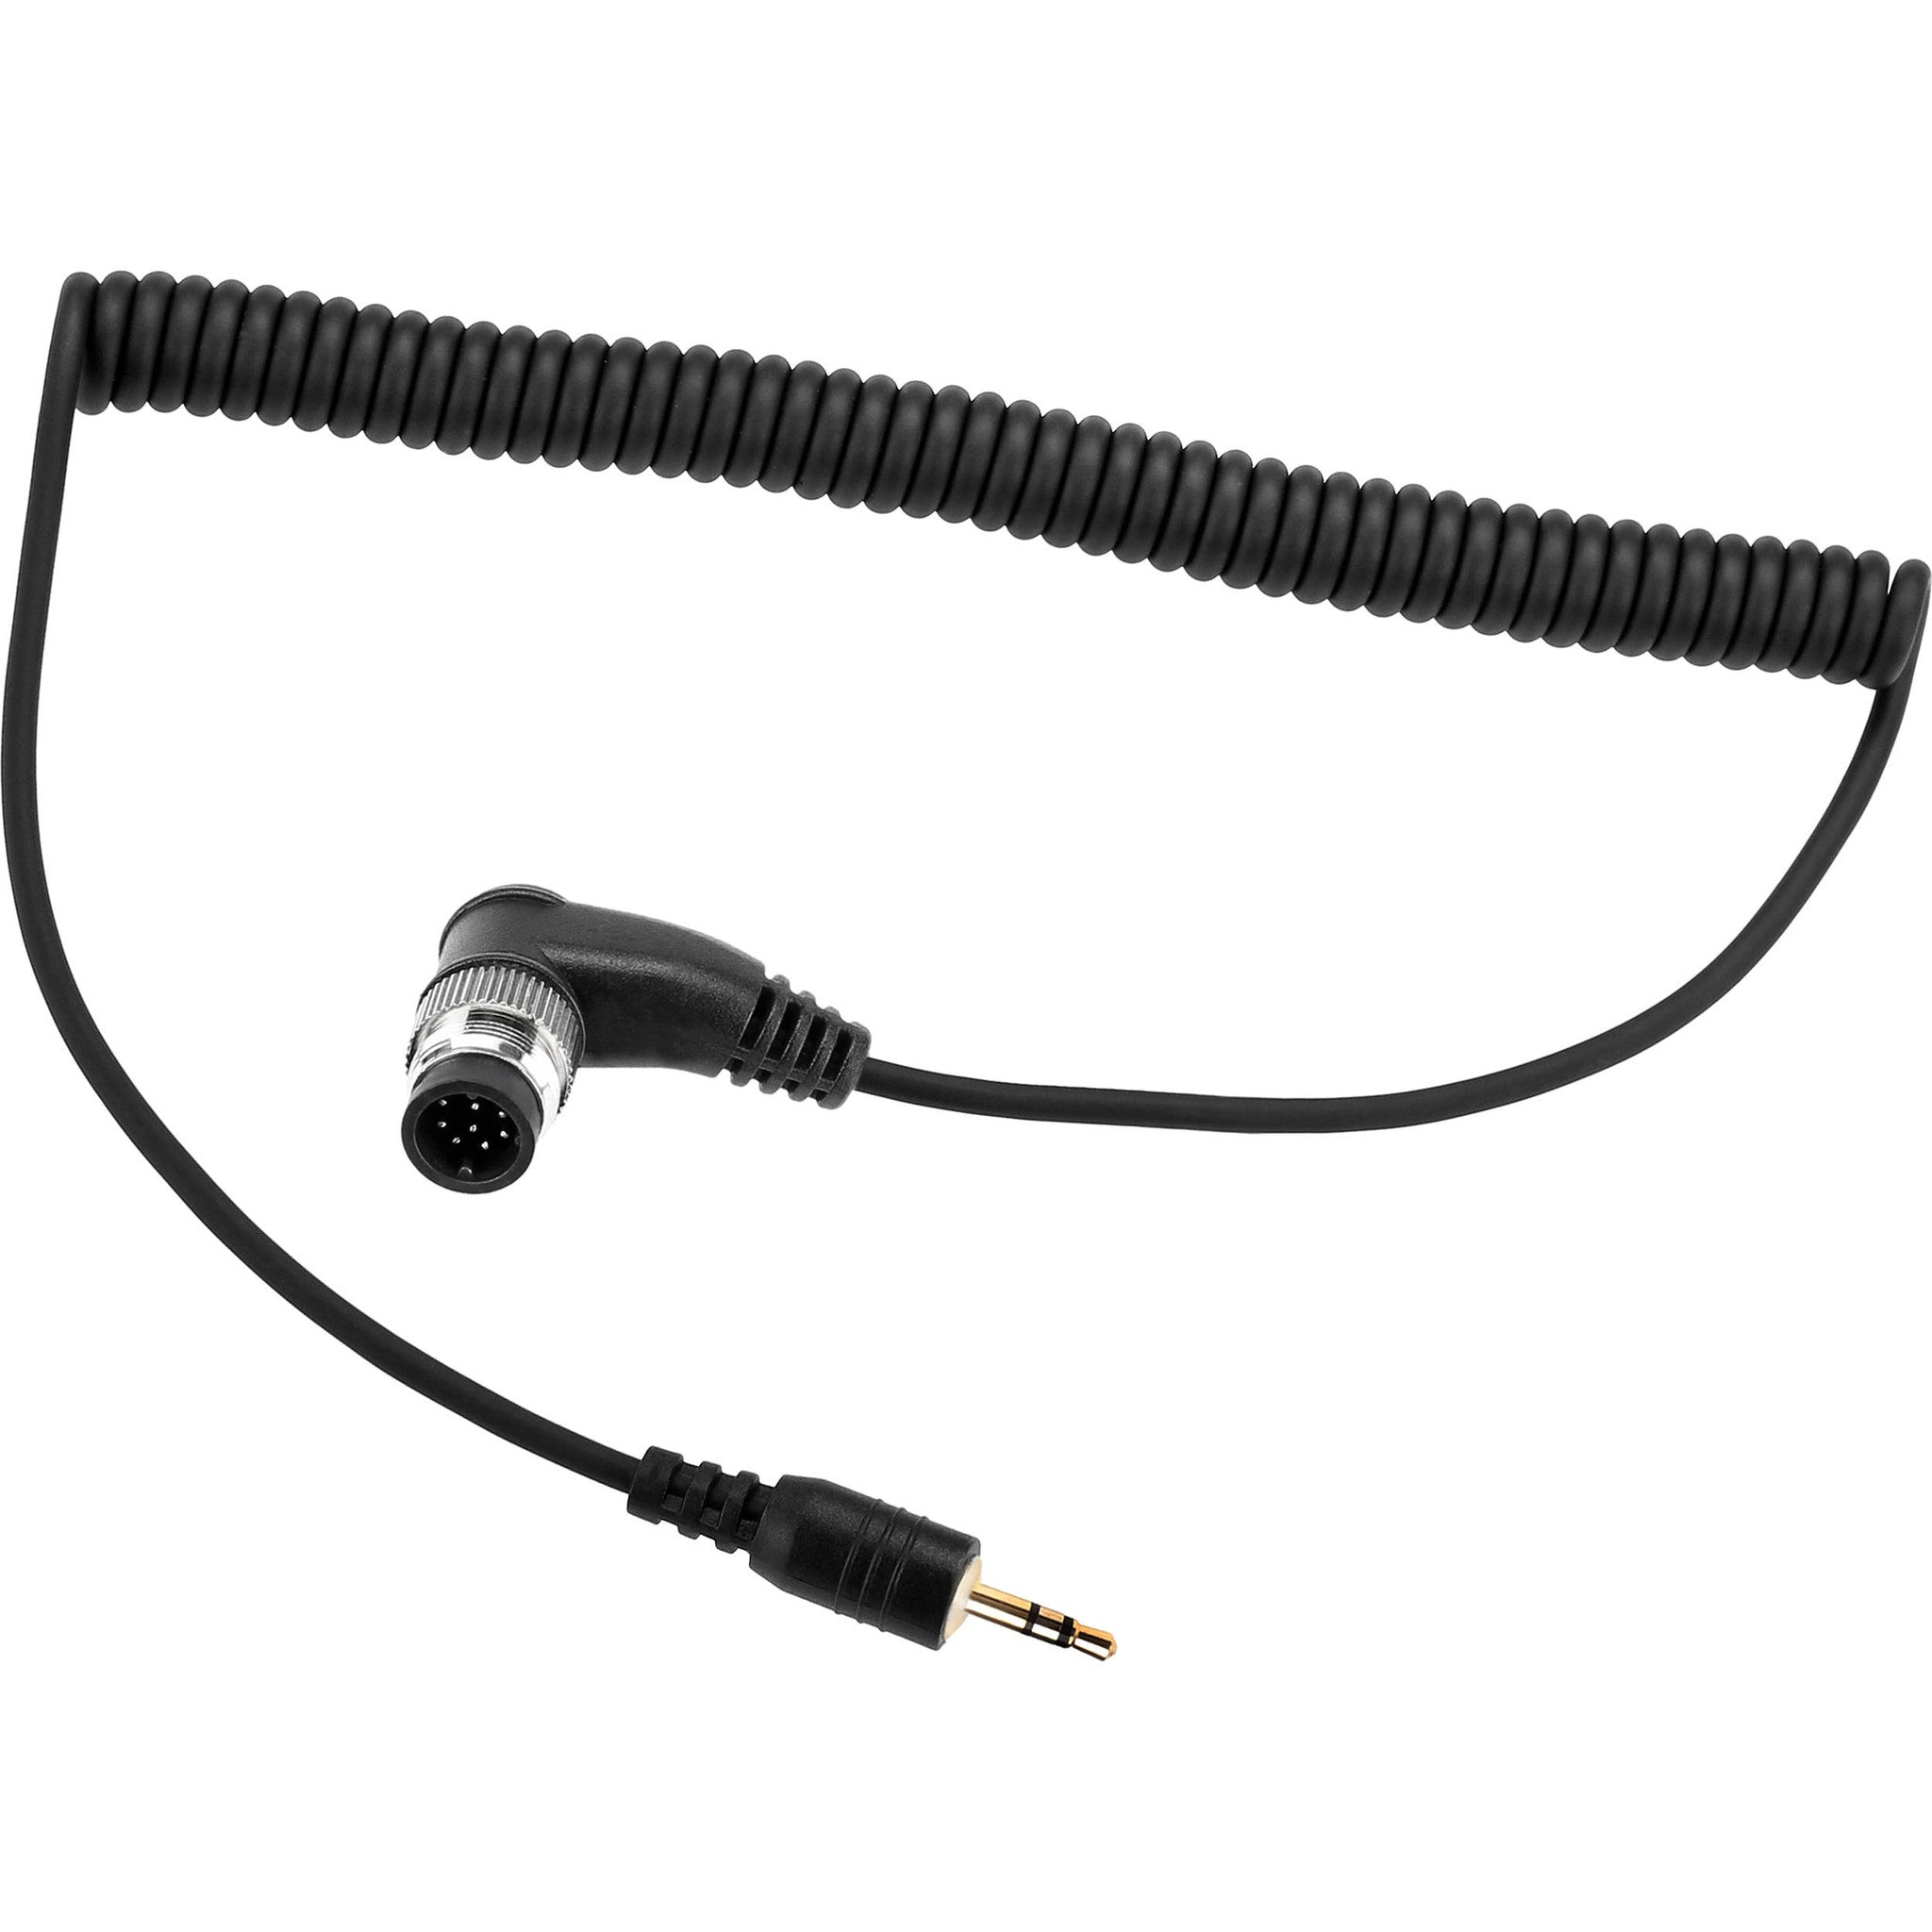 Impact Shutter Release Cable for Nikon Cameras with 10-Pin Connector